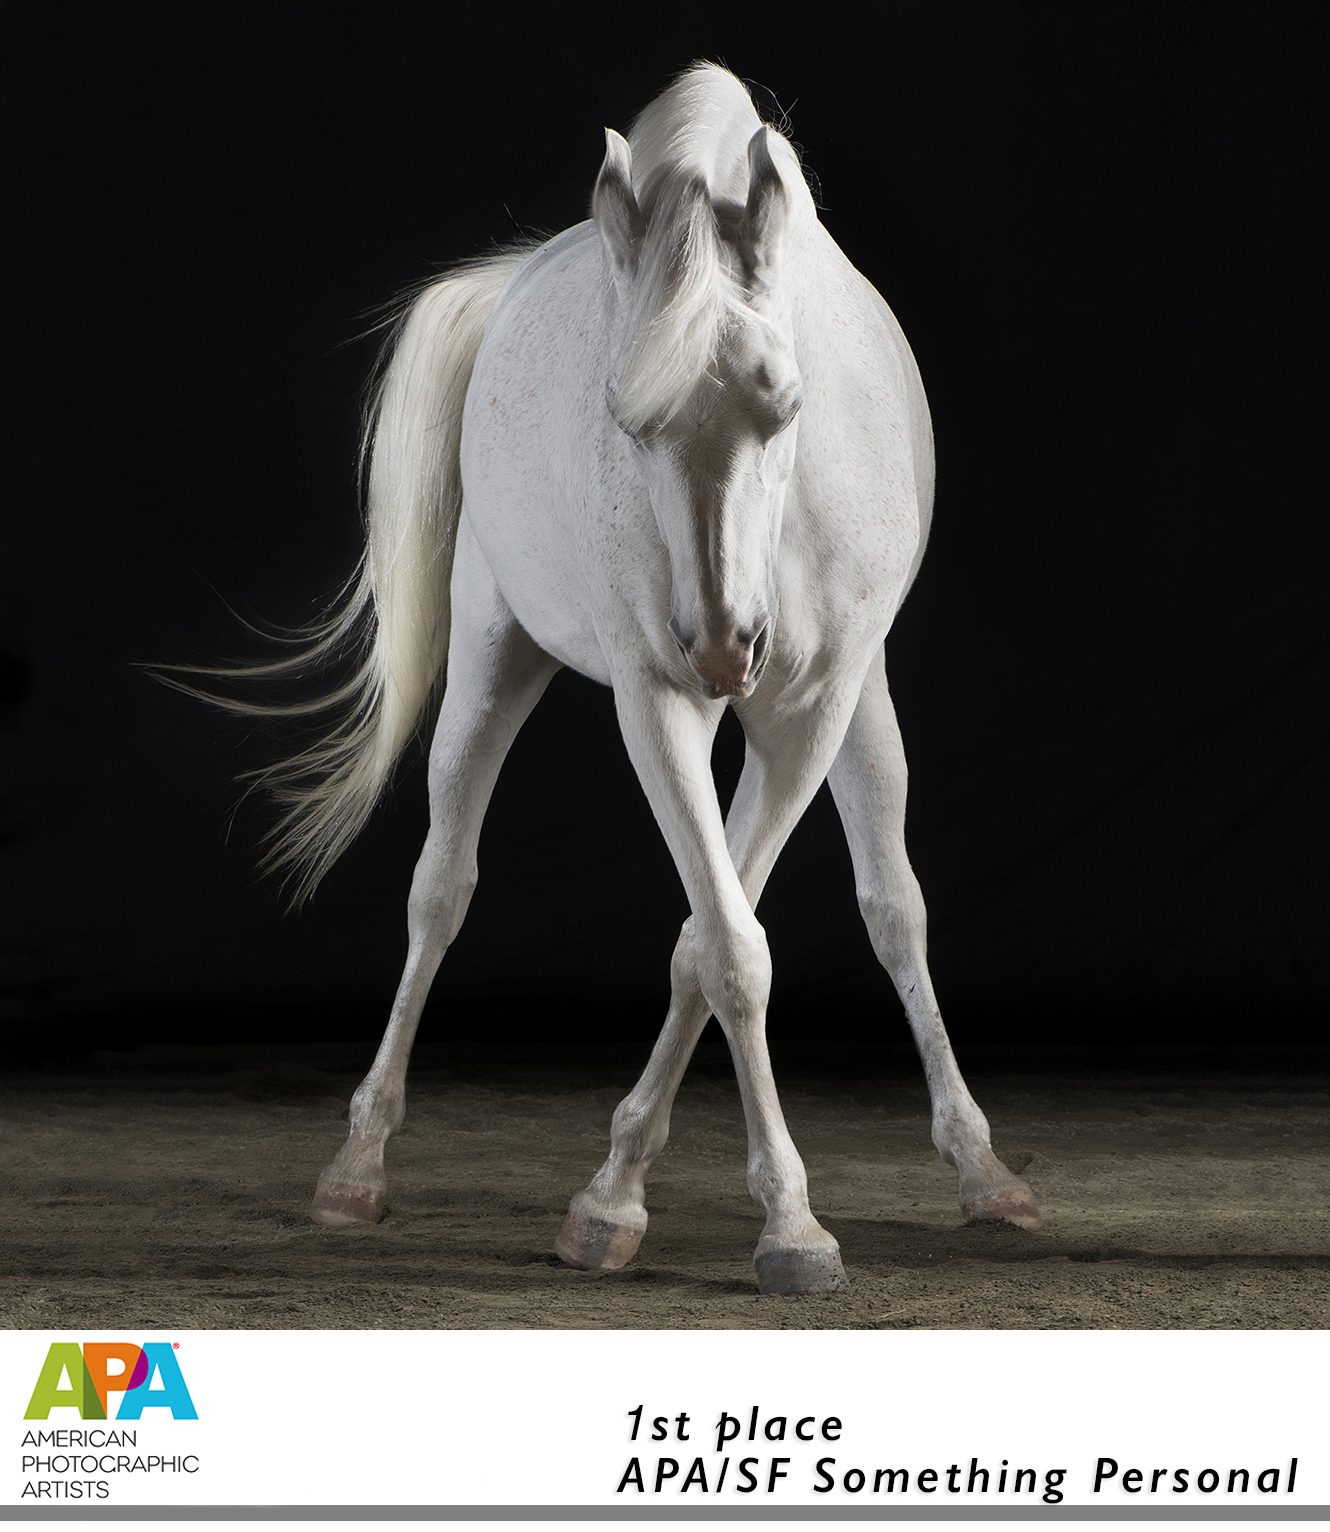 Cam the Arabian in side pass, one of my favorite photographic equine images. This image and others are available for purchase. Some people say this is the white horse dancing photograph.